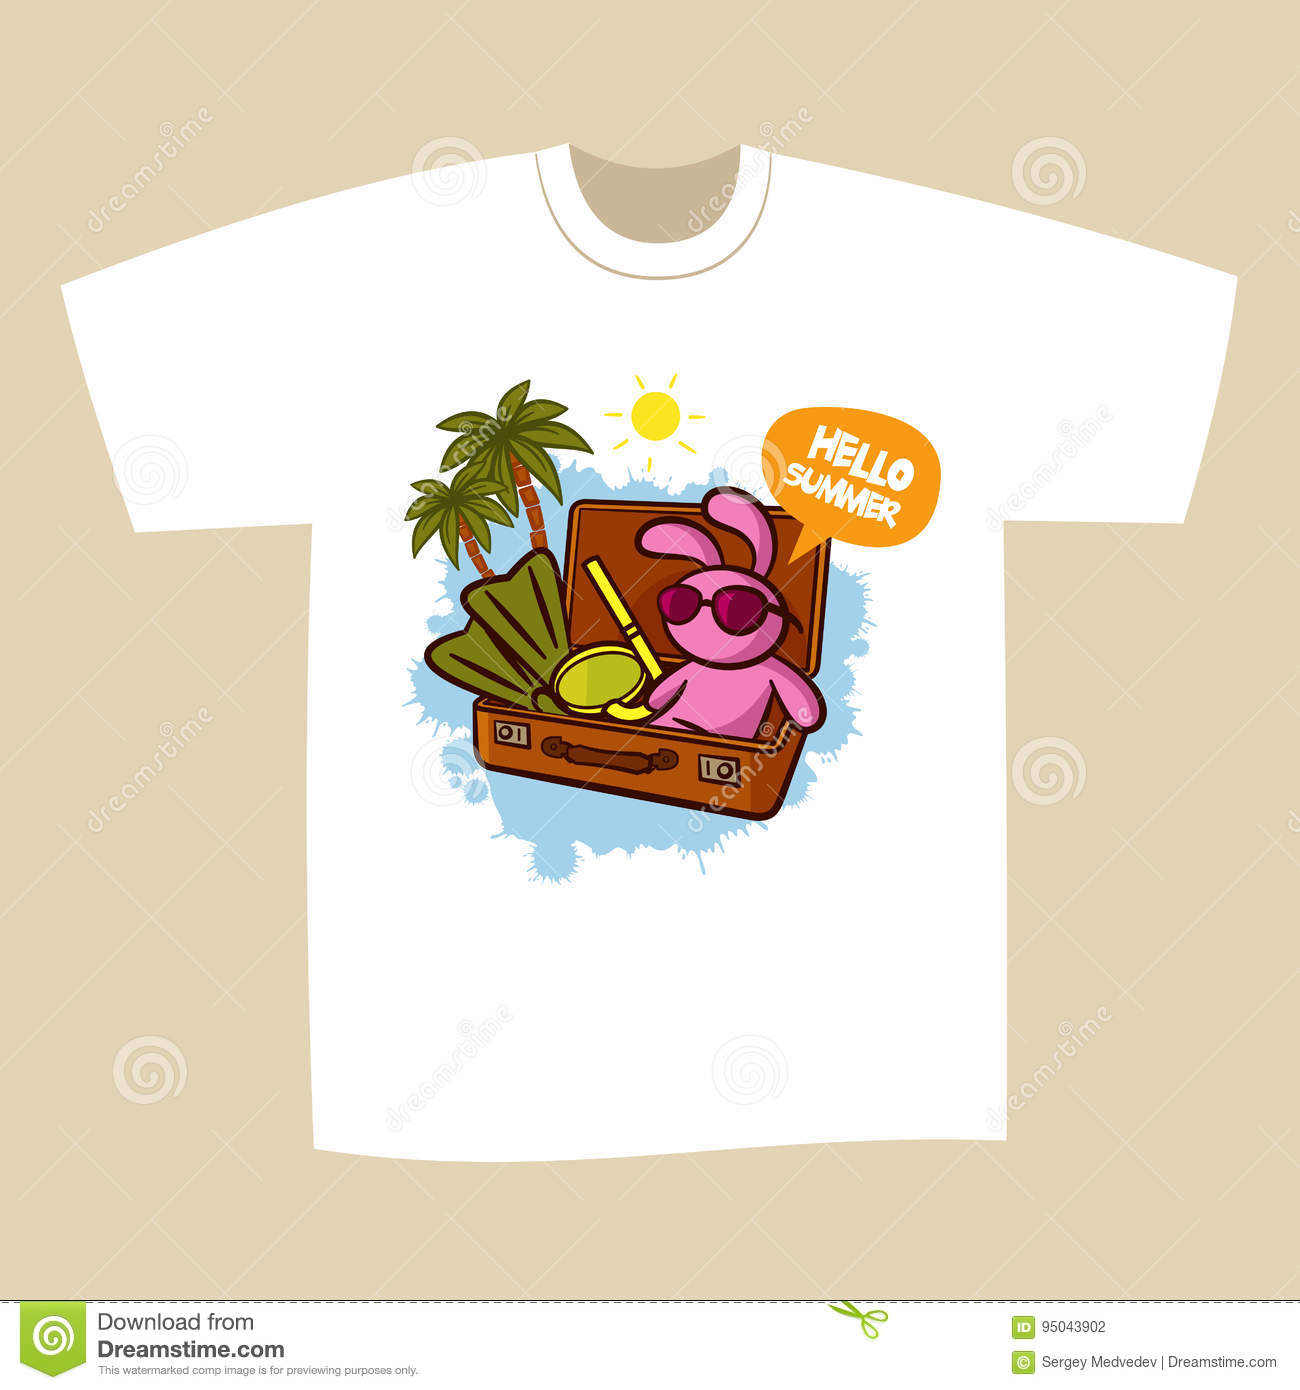 59307c6a476 T-shirt Print Design Summer Vacation Stock Illustration ...